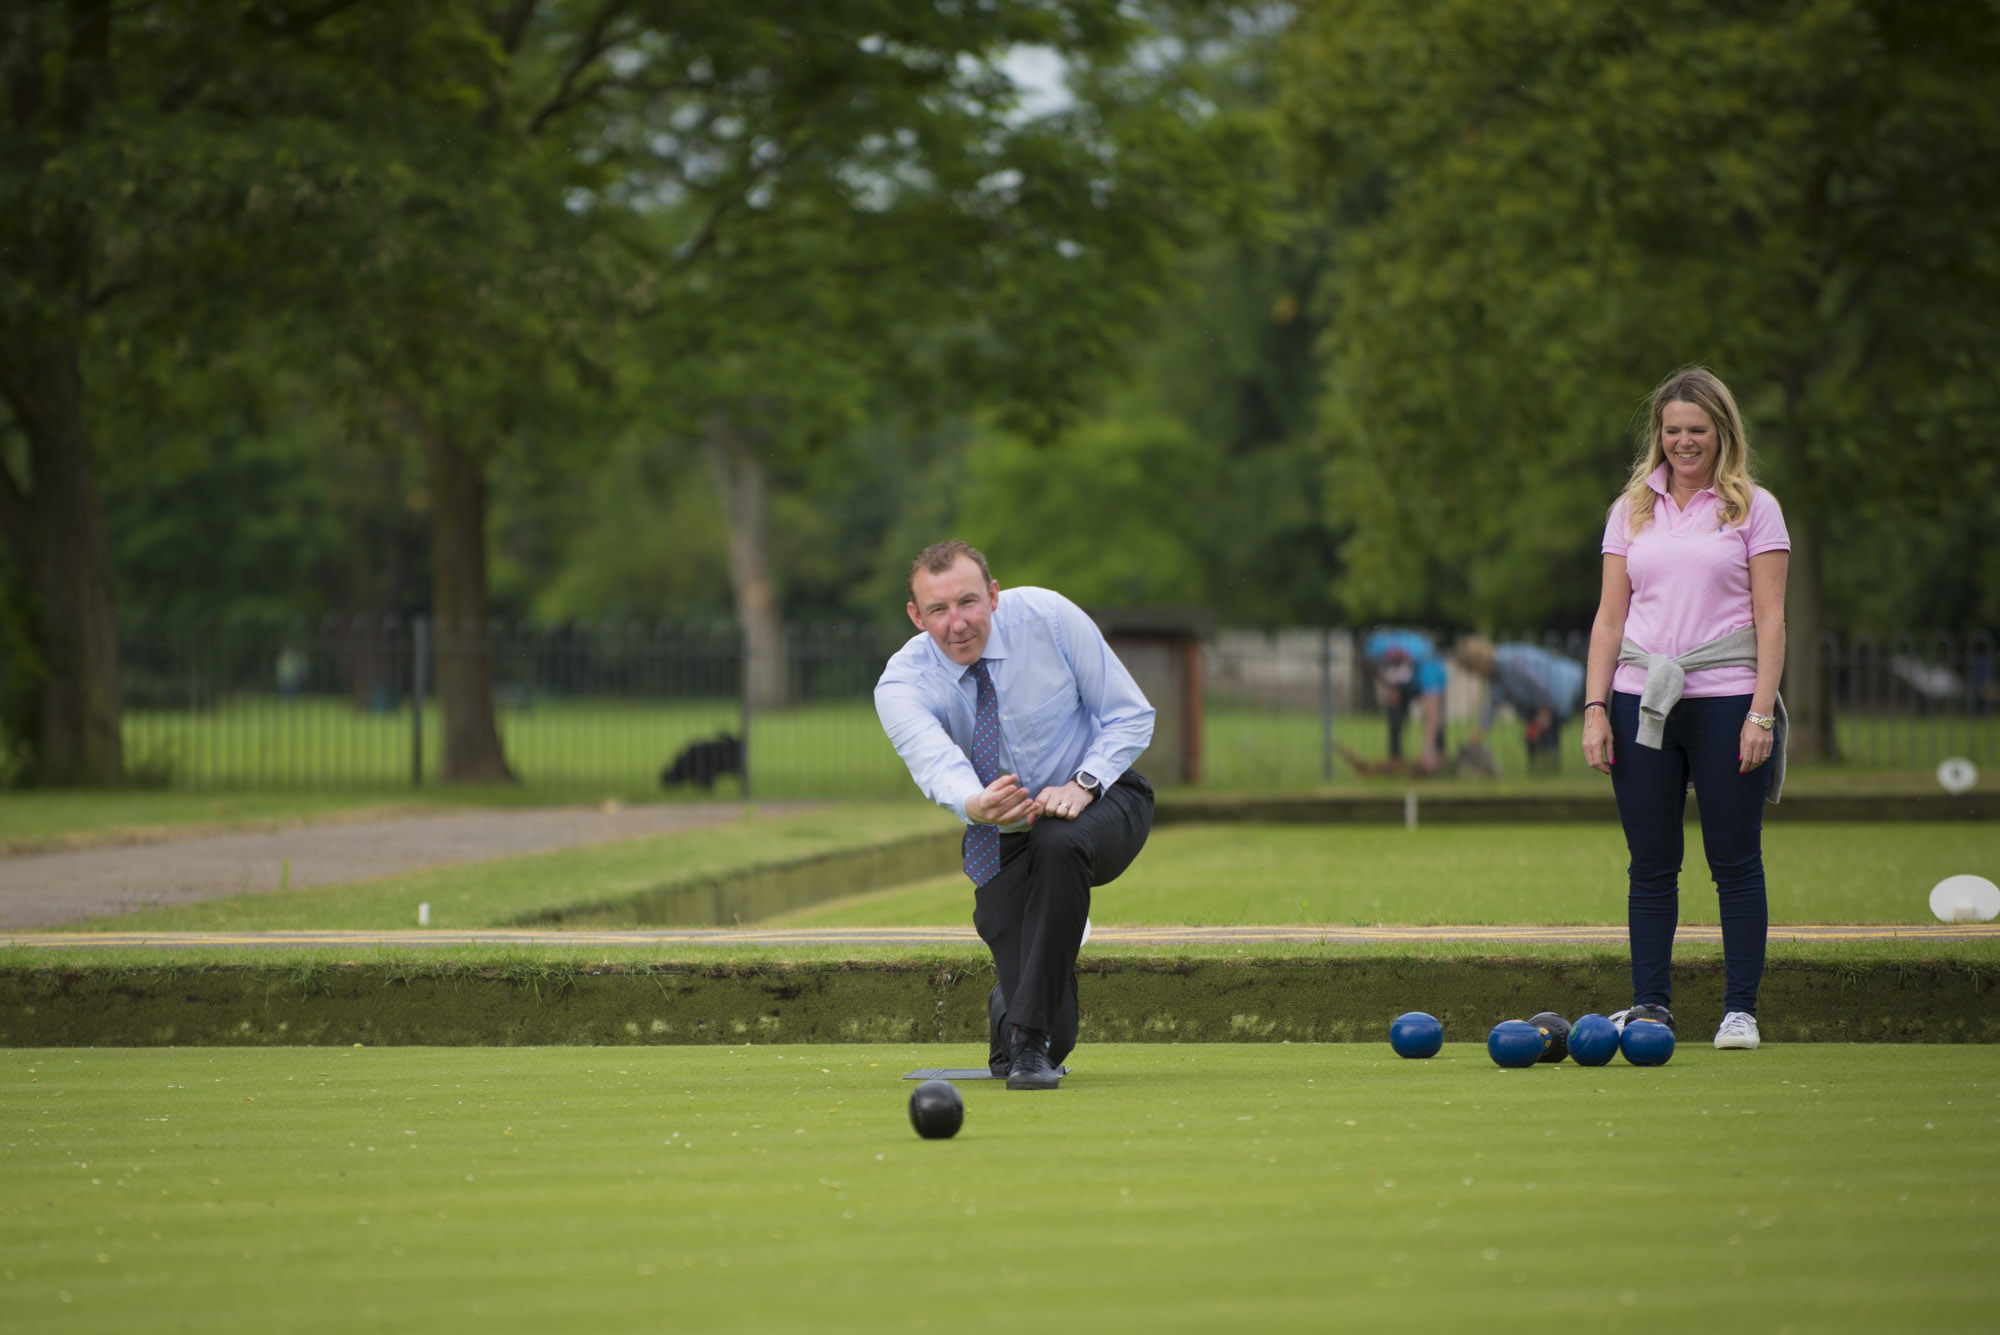 Bowls Networking Leamington by Charlie Budd The Tall Photographer-26